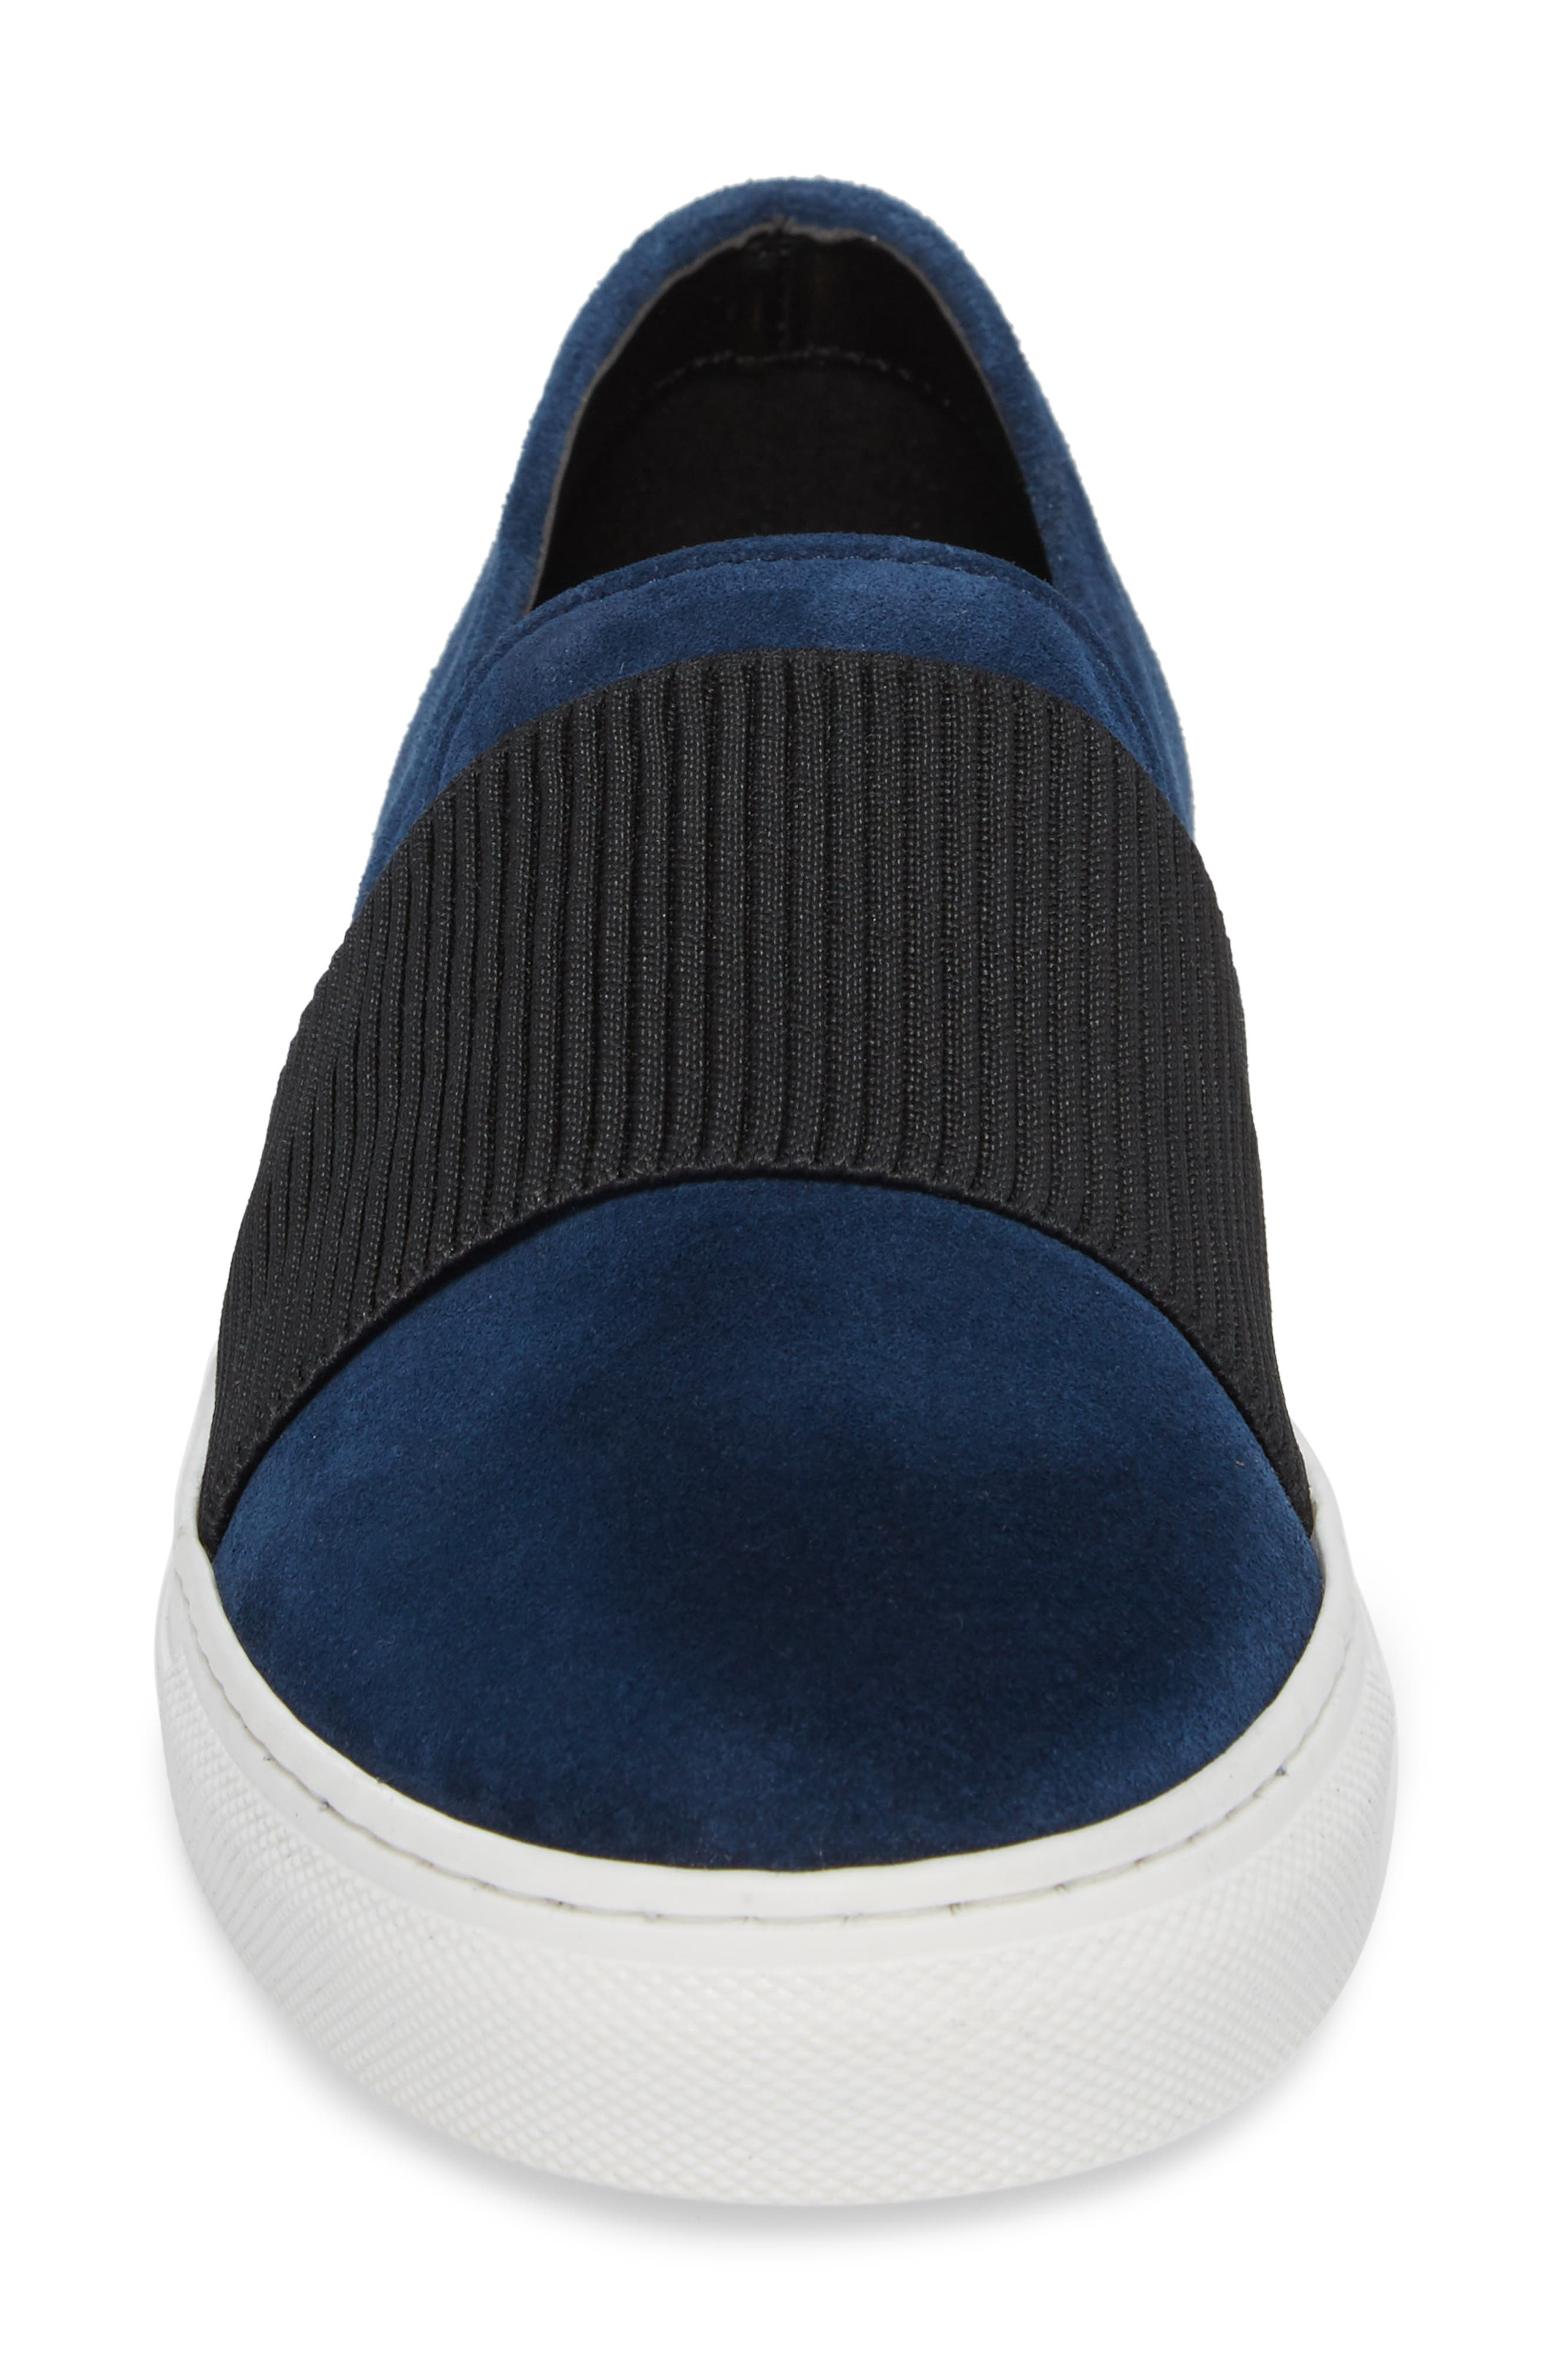 Otto Slip-On Sneaker,                             Alternate thumbnail 4, color,                             Navy Suede